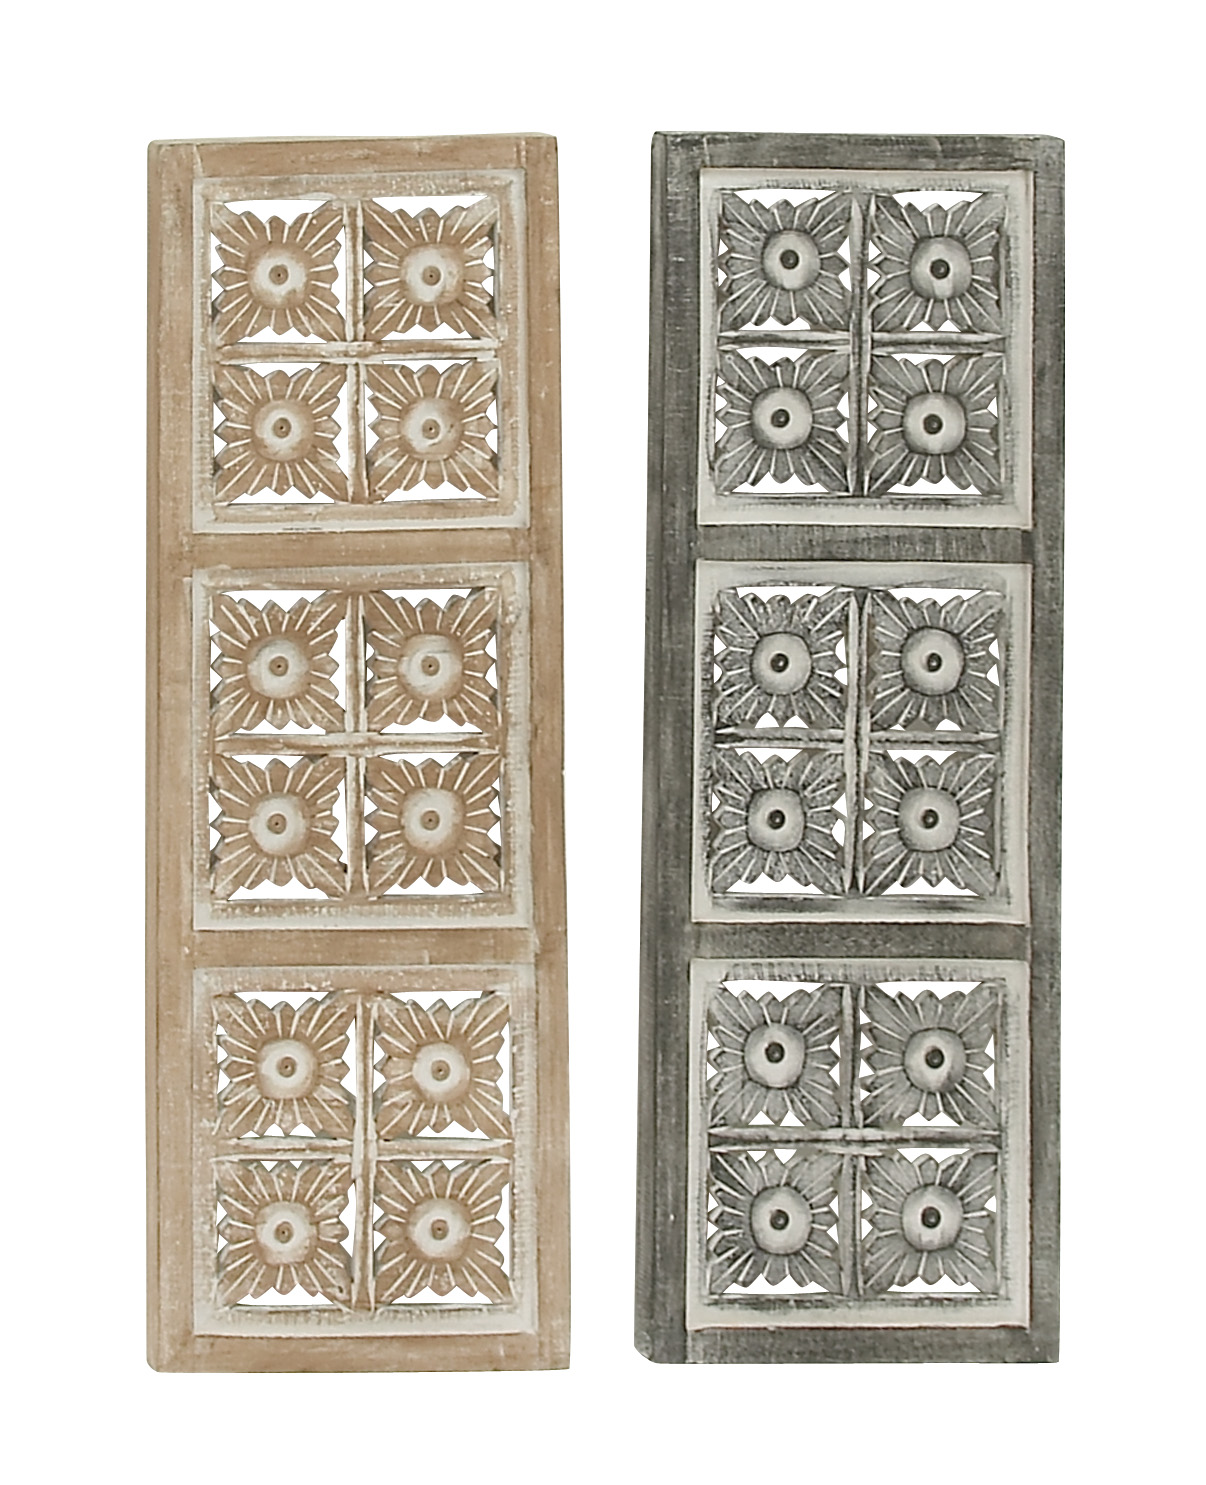 "Woodland Imports 2 Assorted Gorgeous Wood Metal Wall Panel, 12"" W x 36"" H by Woodland Imports"